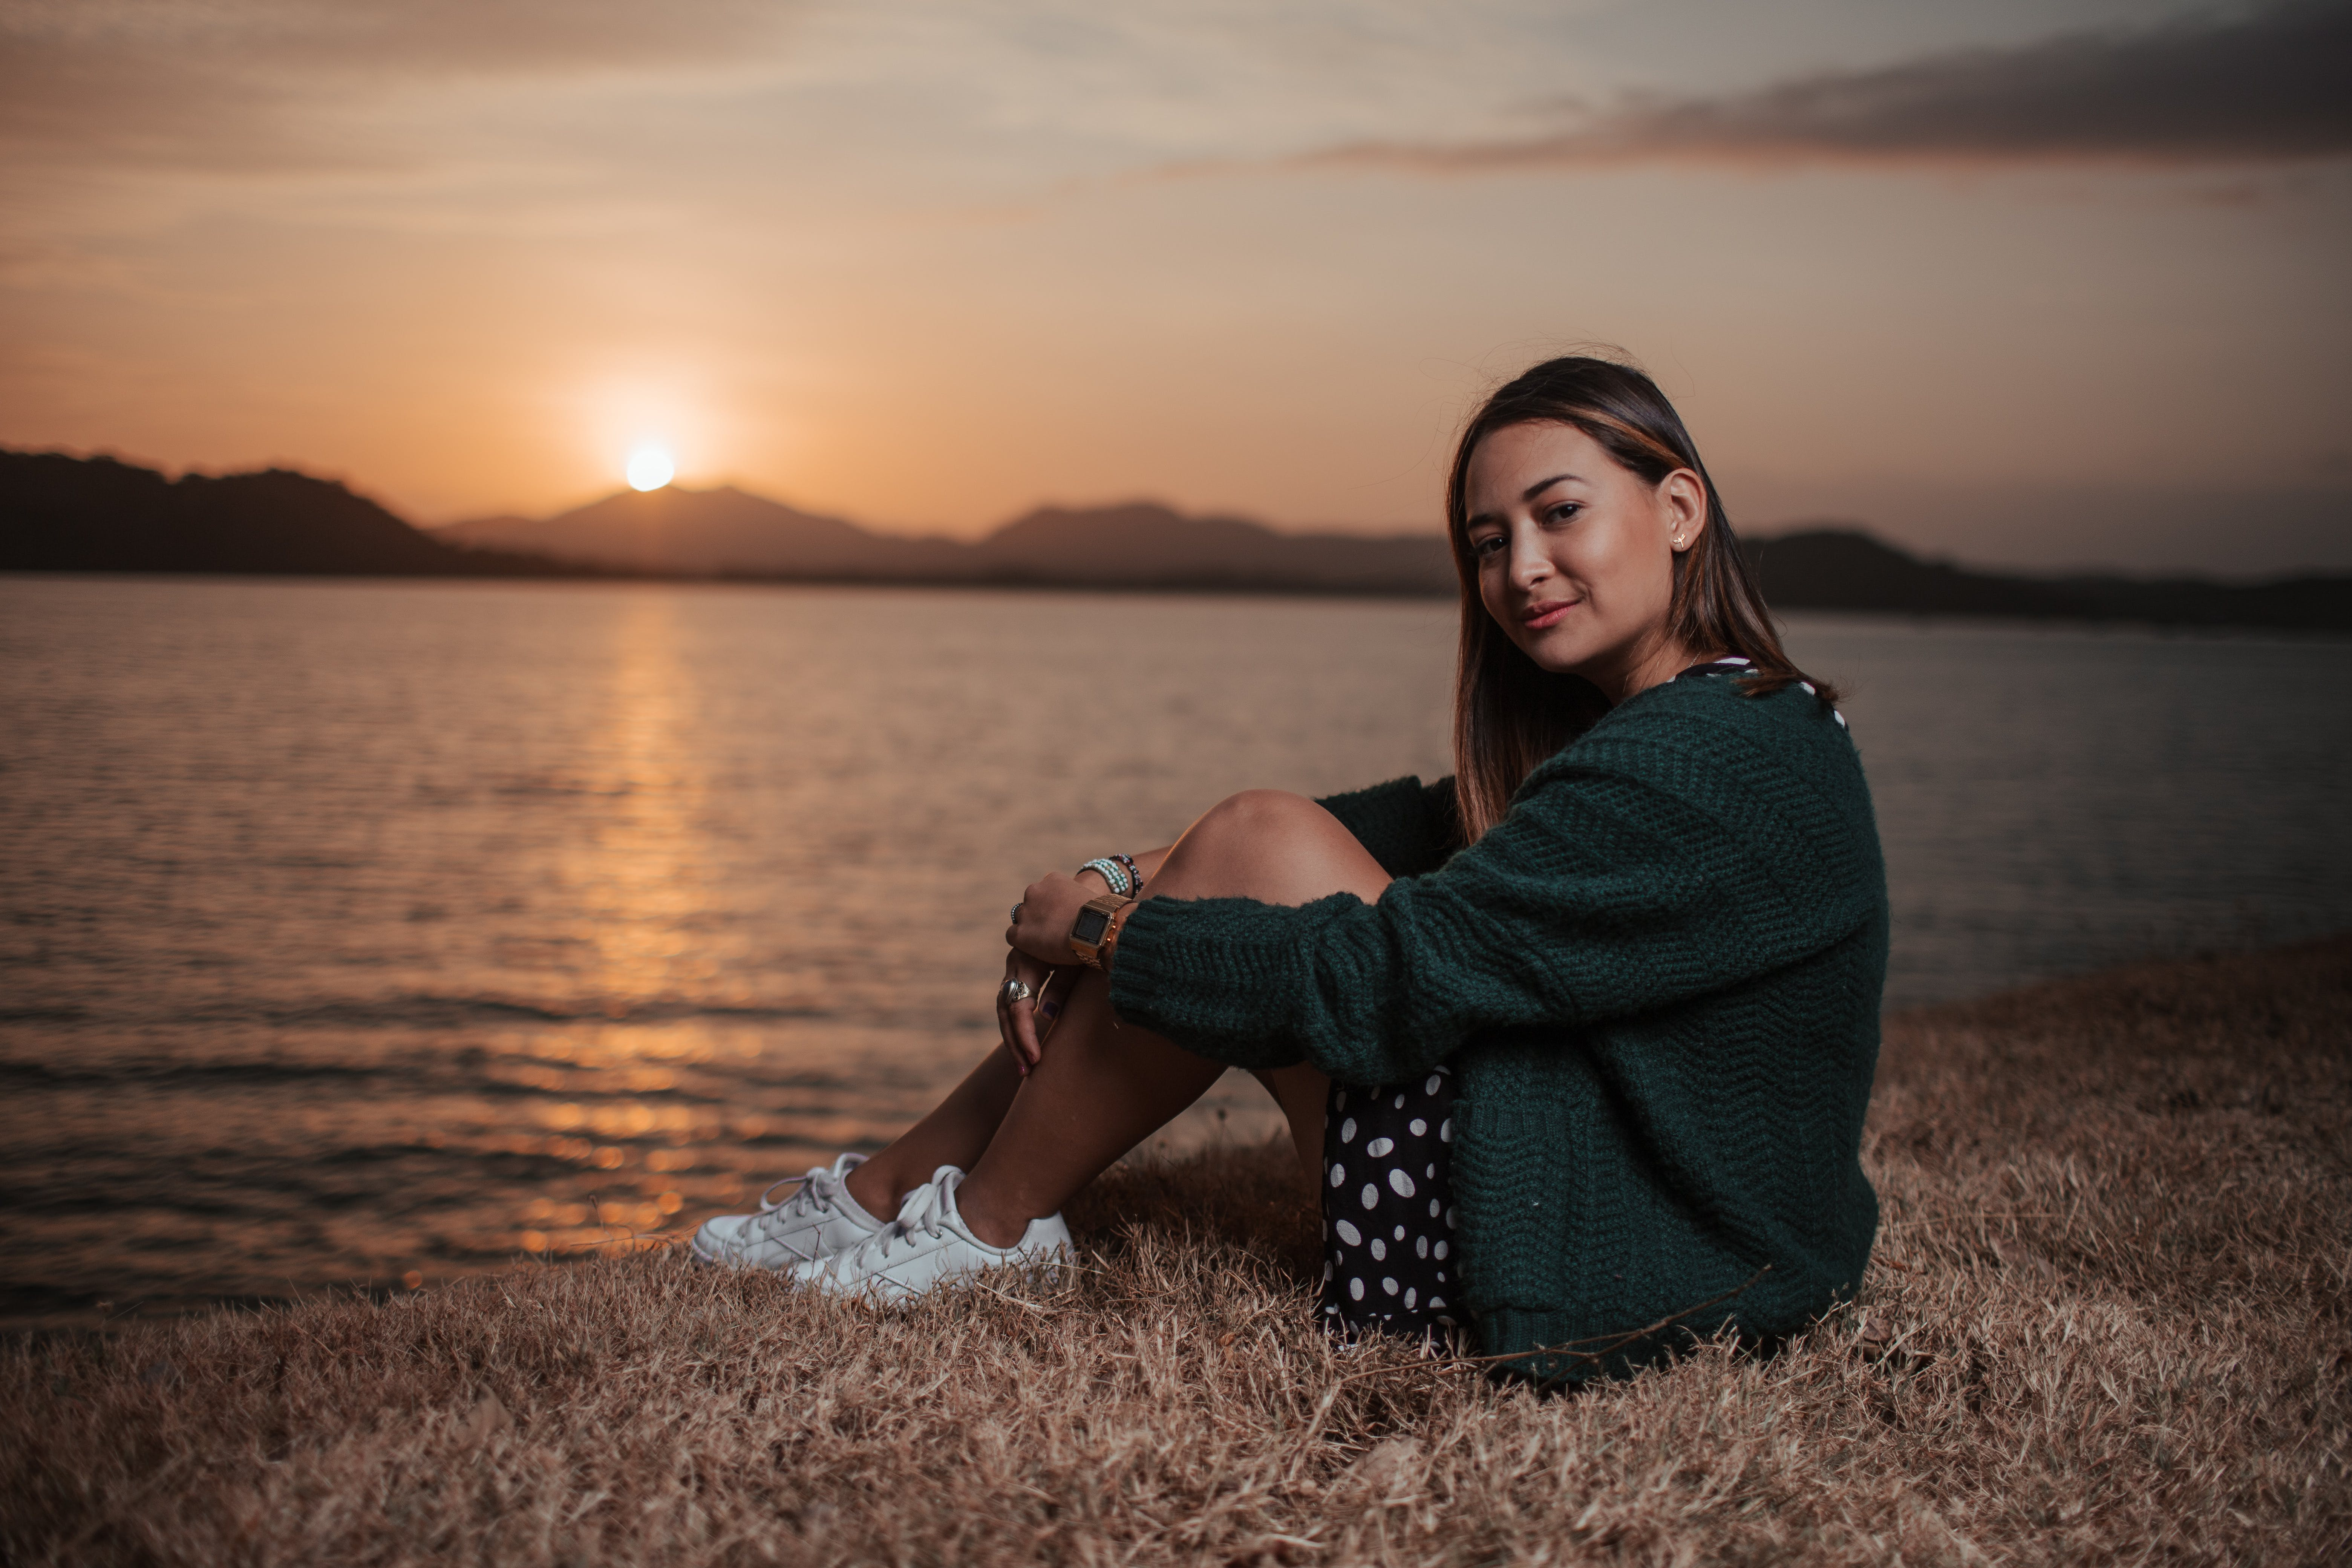 Woman Sitting Near Calm Body of Water during Sunset